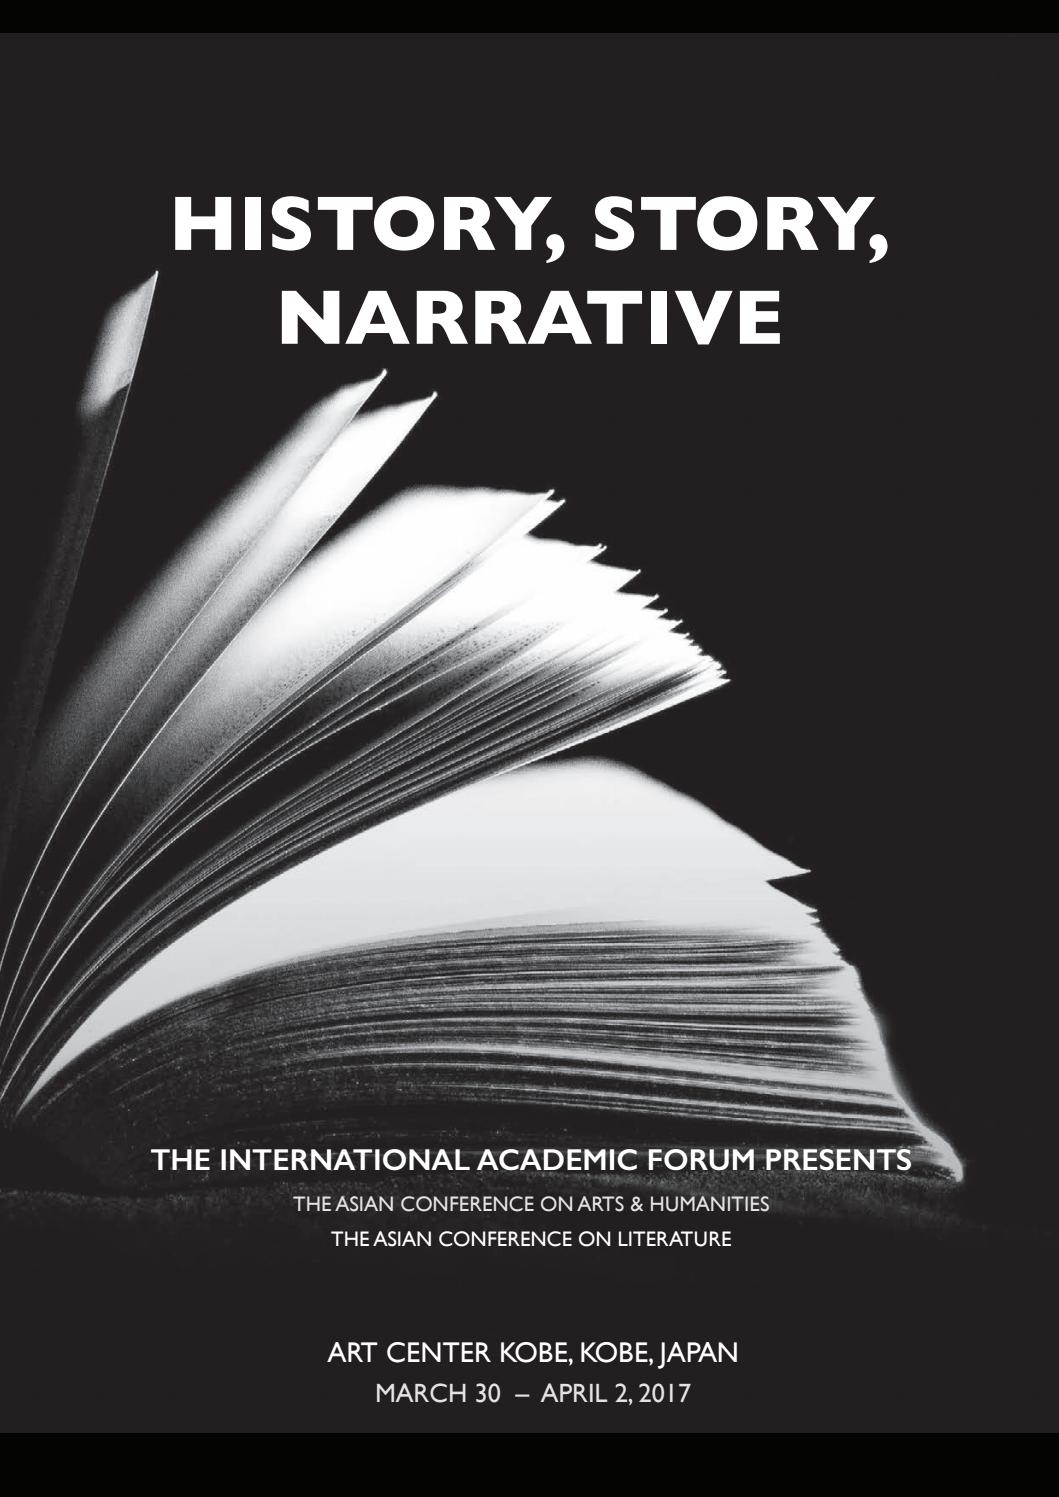 formalism experience and the making of american literature in the nineteenth century davis theo